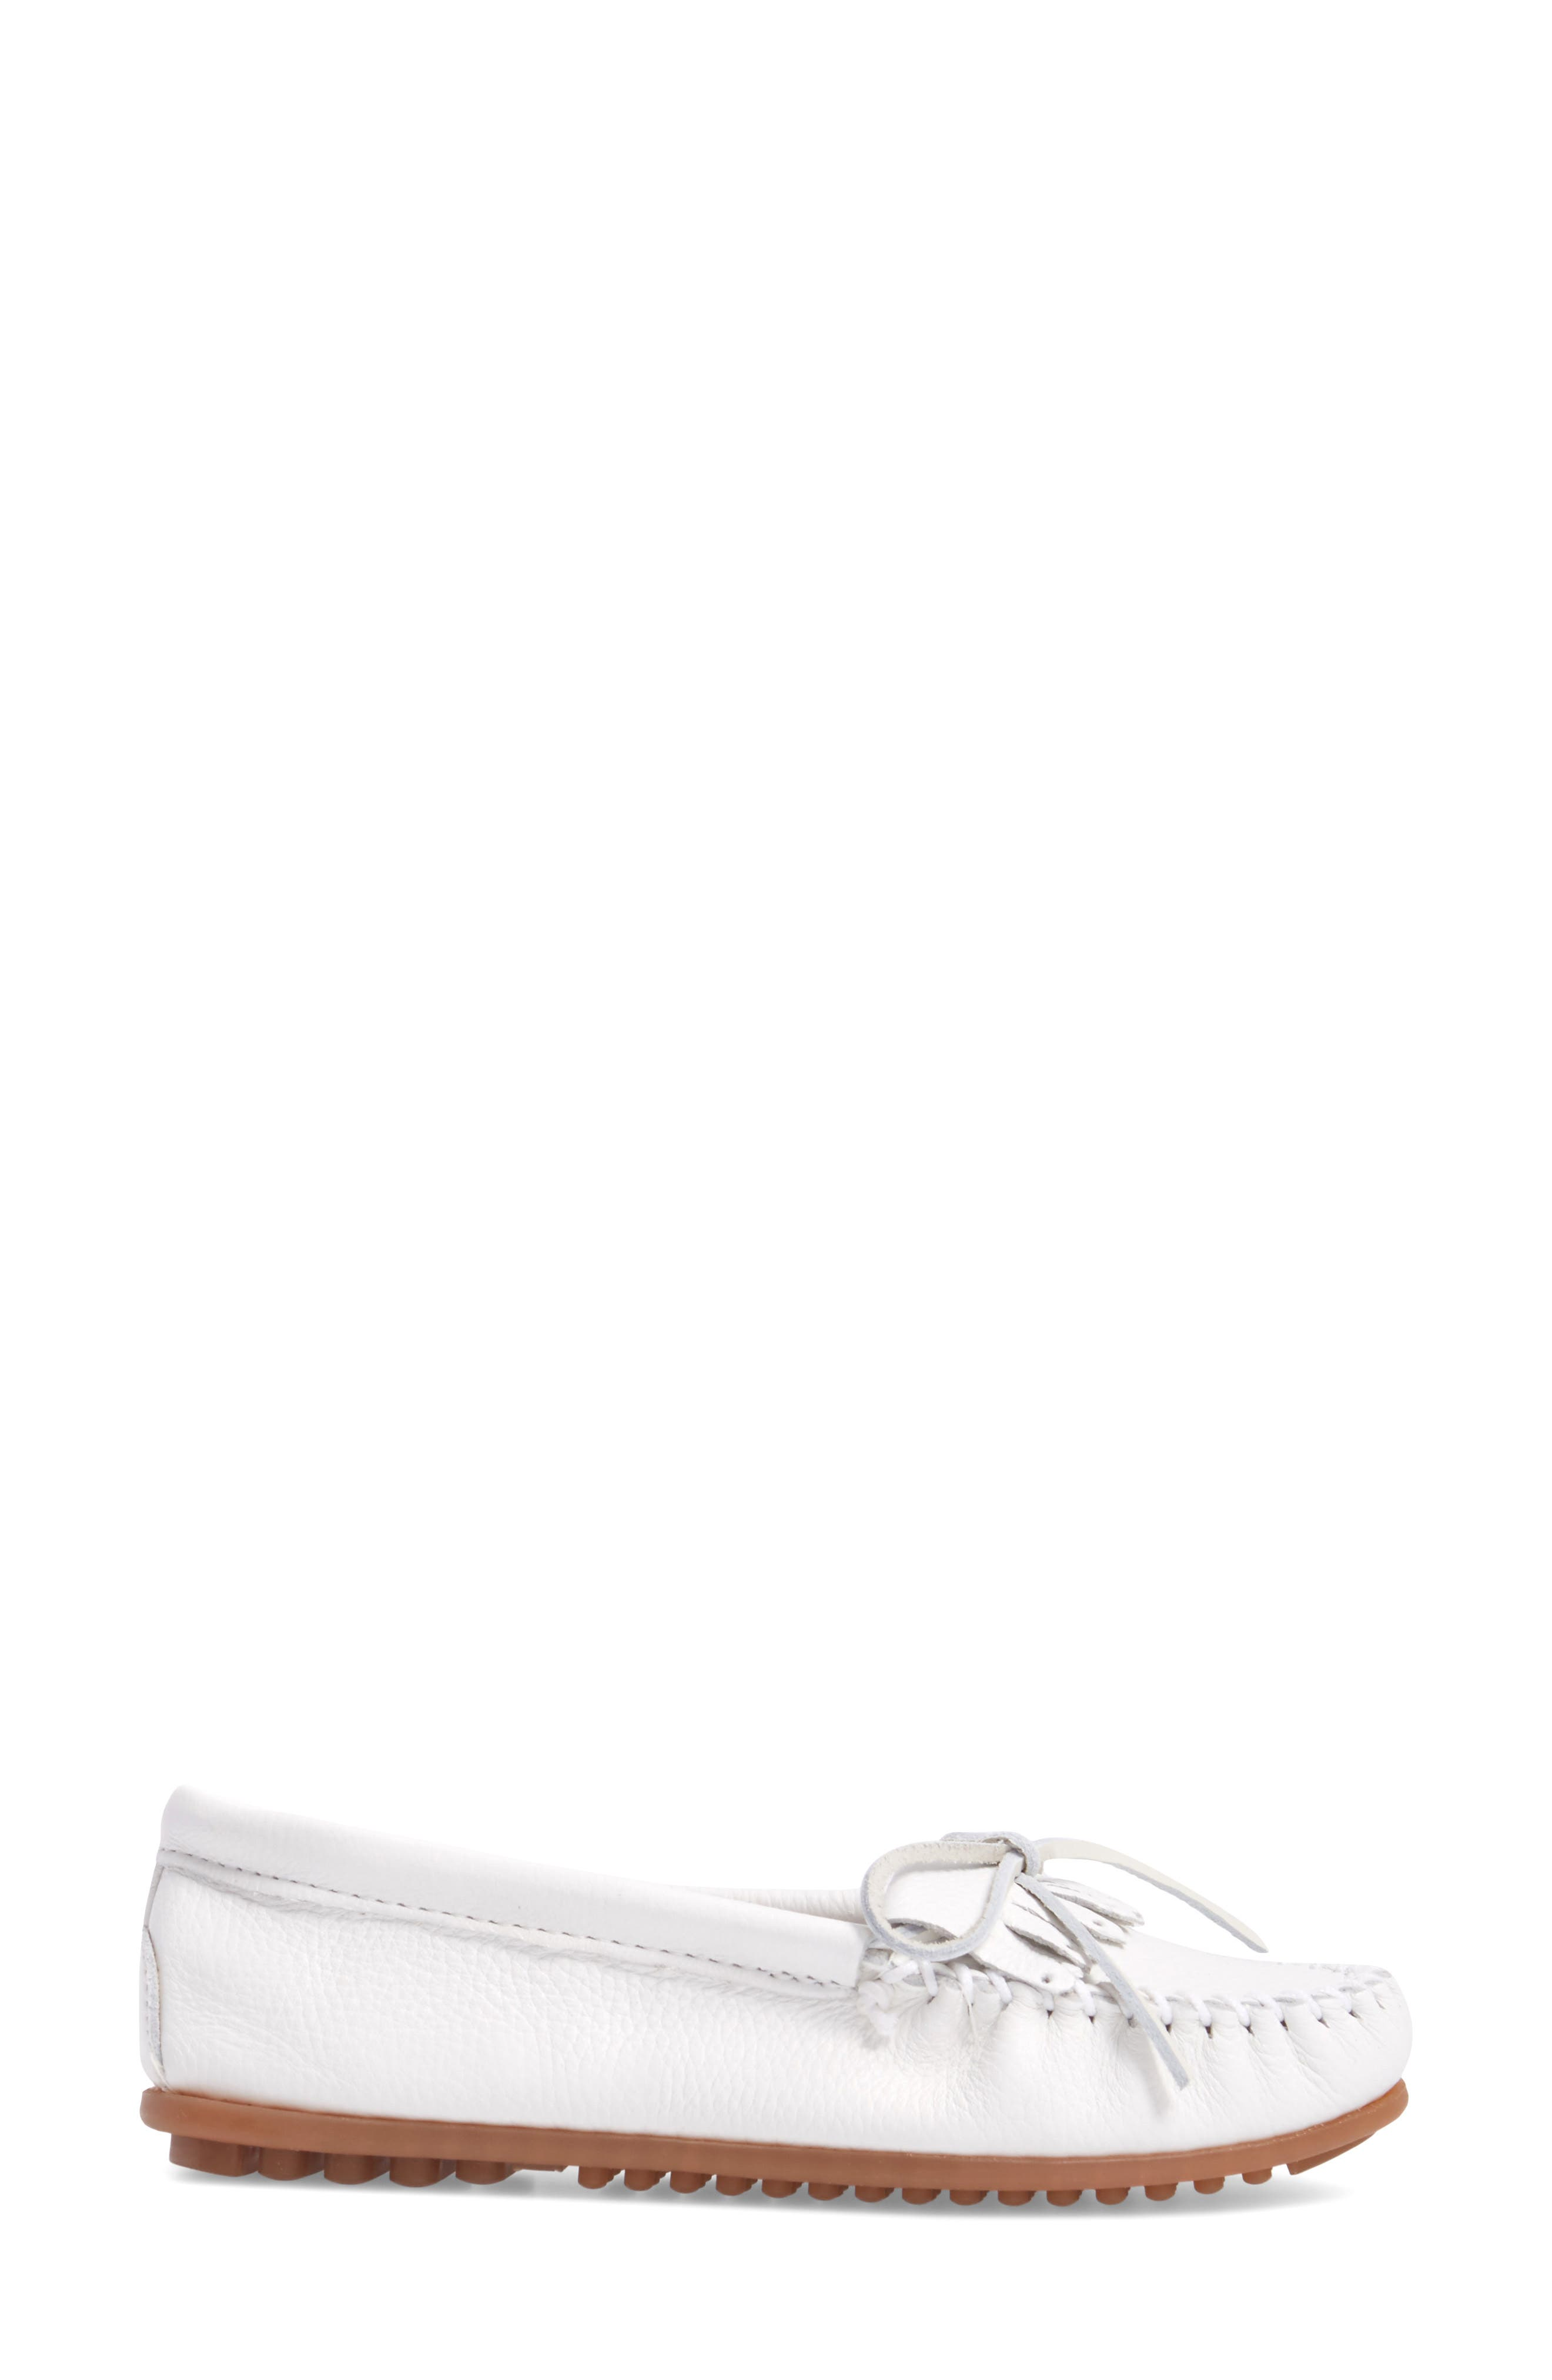 Kilty Moccasin,                             Alternate thumbnail 3, color,                             WHITE LEATHER